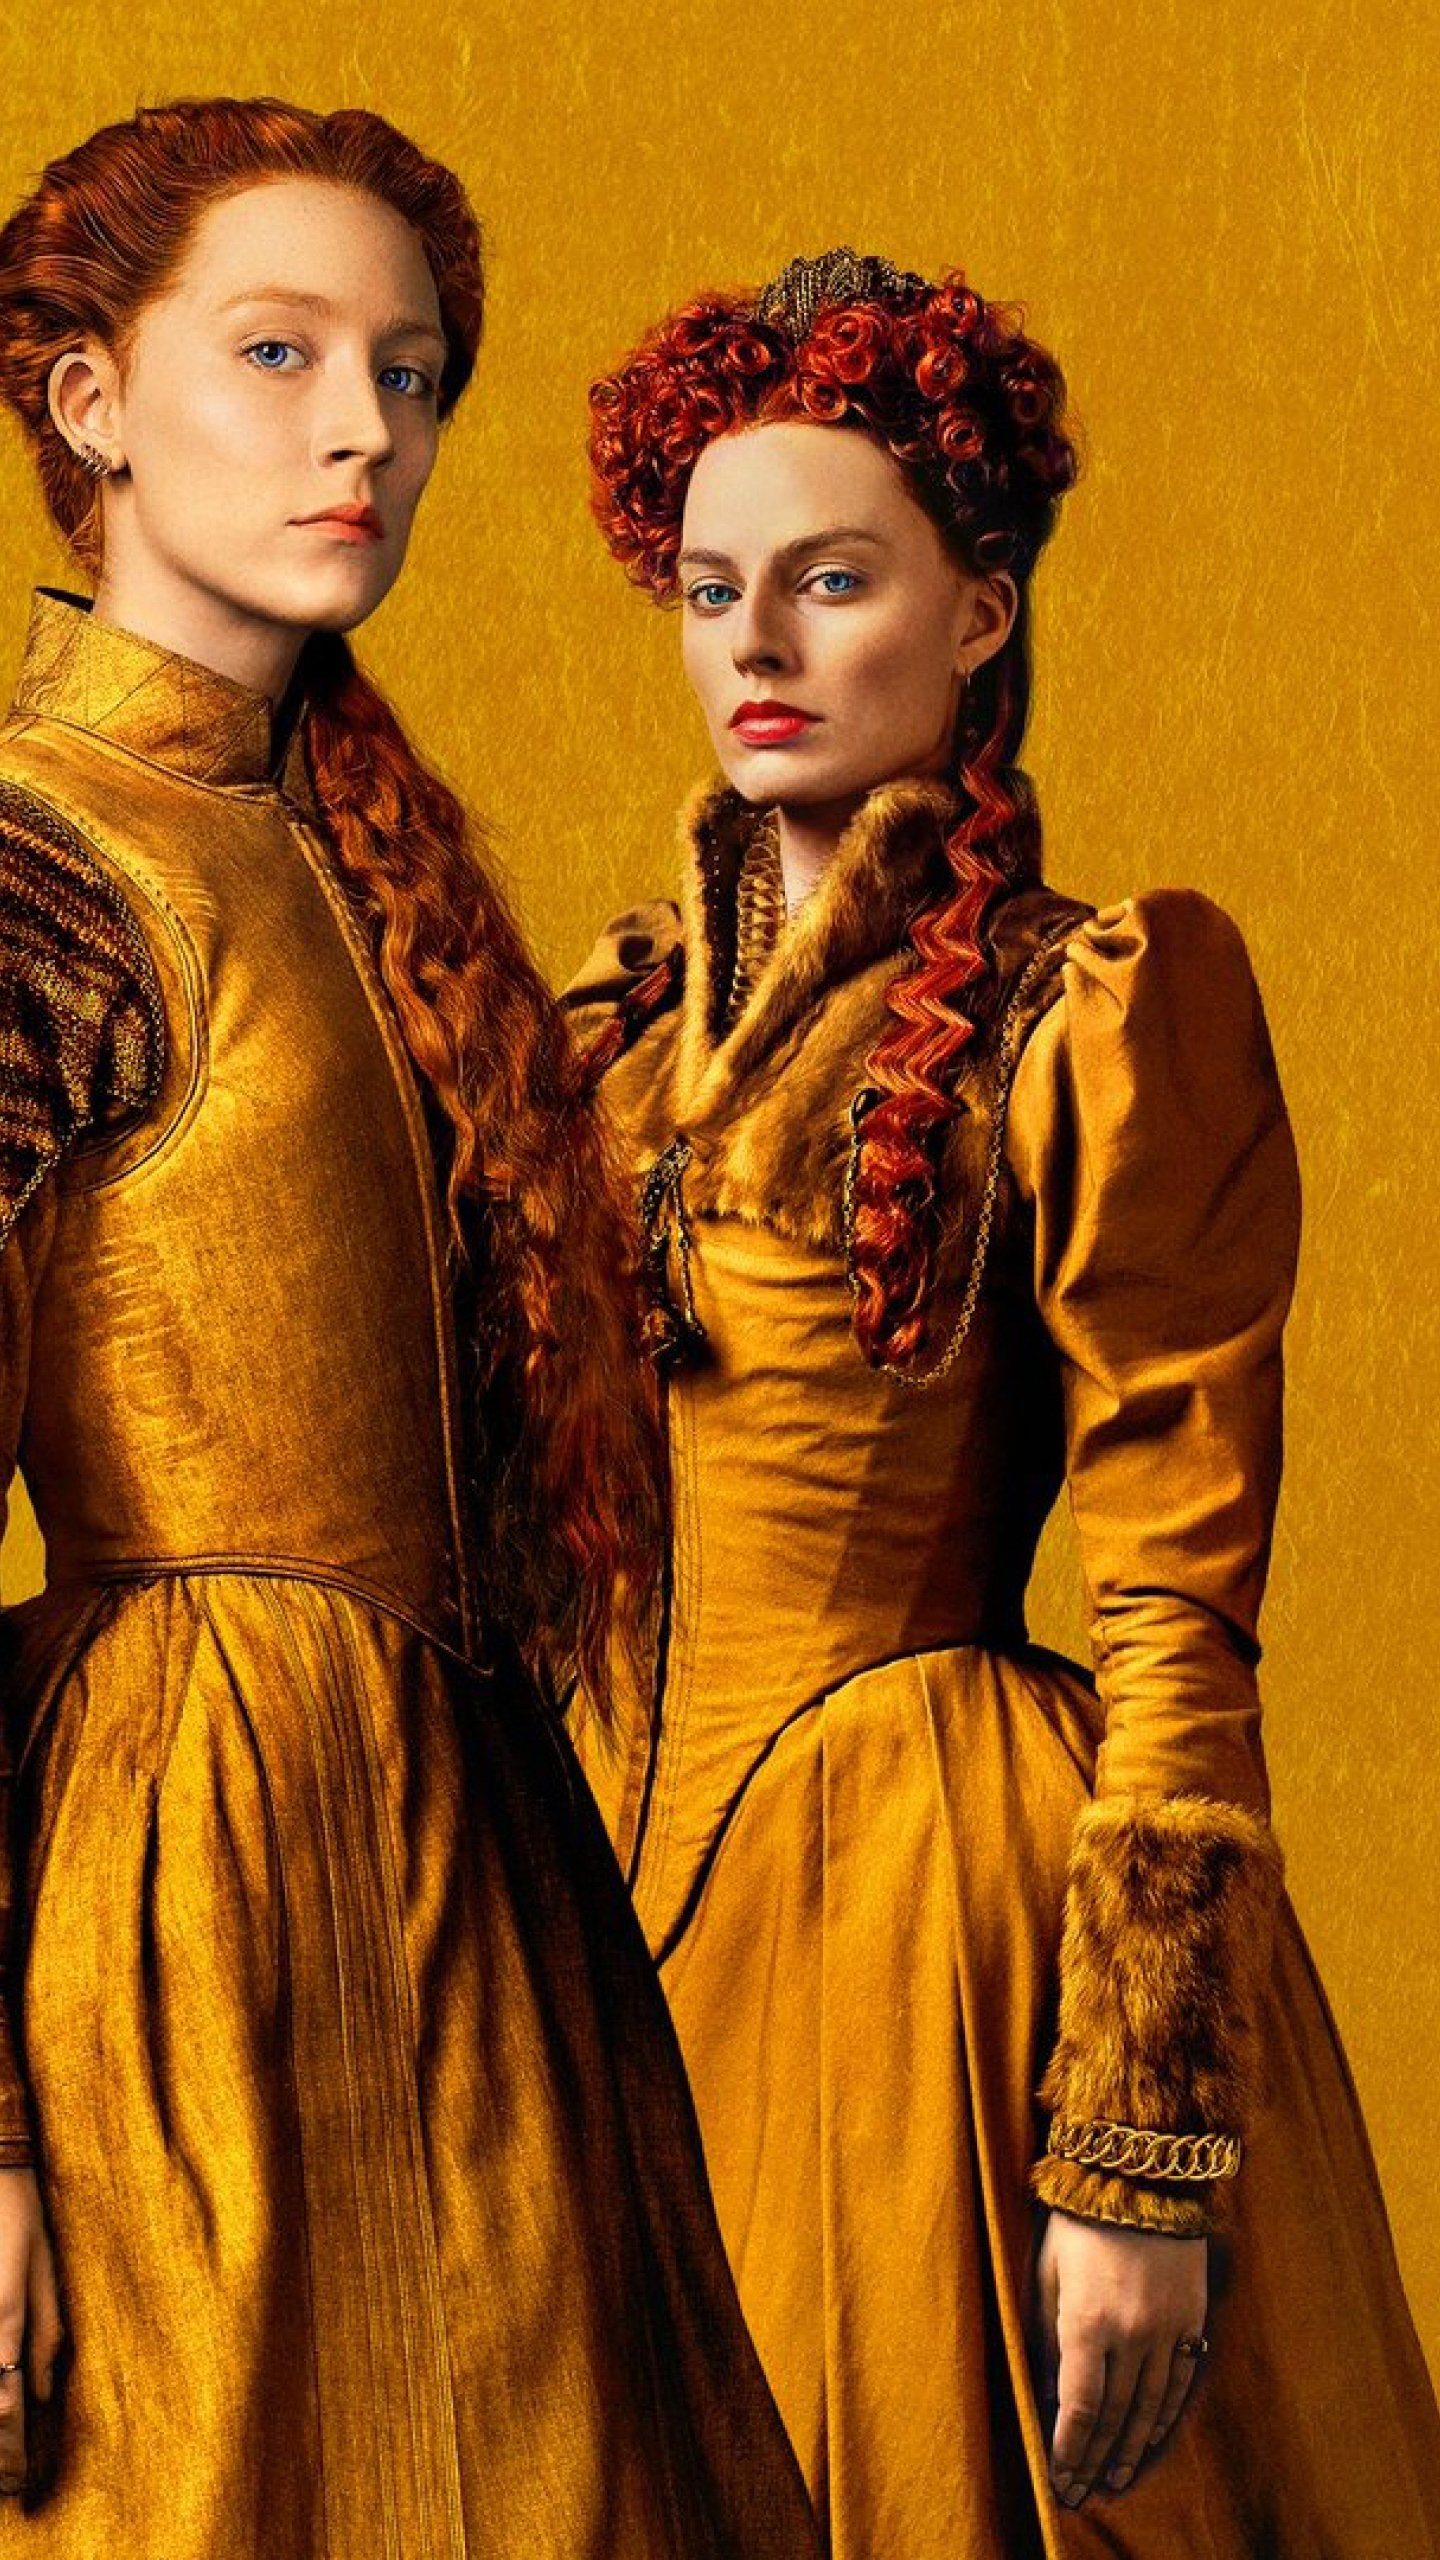 1440x2560 Margot Robbie and Saoirse Ronan in Mary Queen of Scots 1440x2560